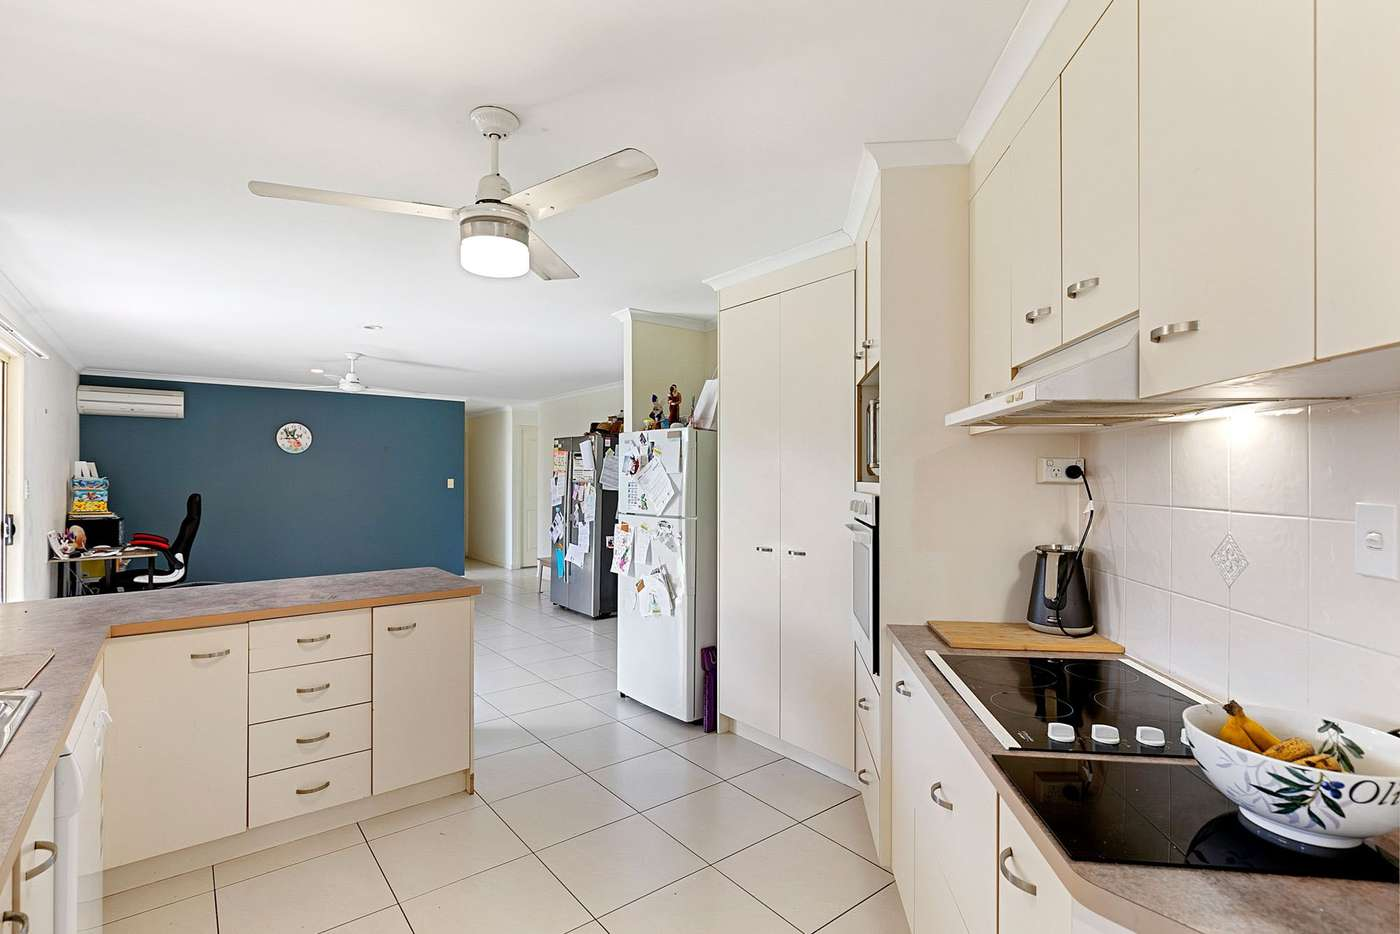 Sixth view of Homely house listing, 71 St Joseph Drive, Urraween QLD 4655